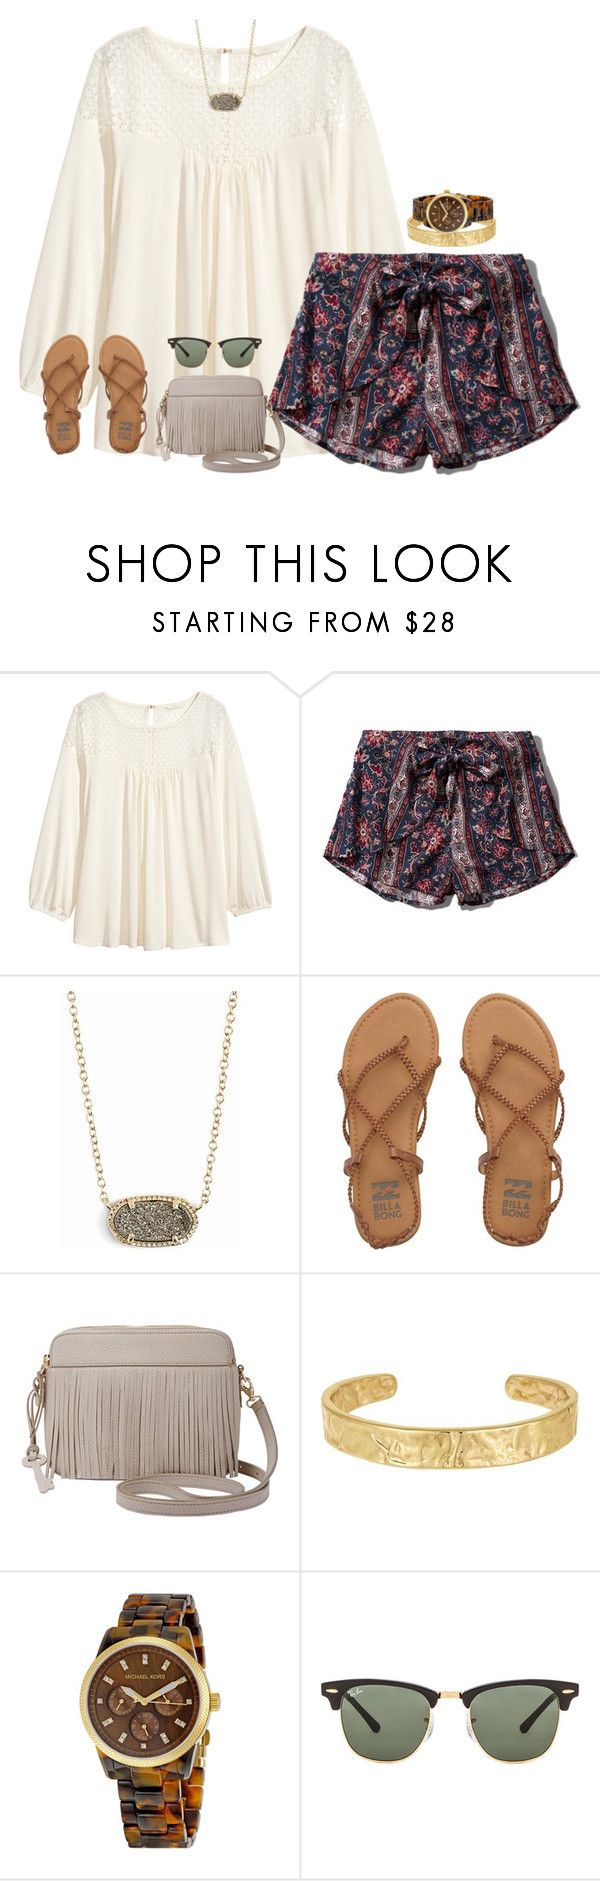 """day 3- shopping"" by hmcdaniel01 ❤ liked on Polyvore featuring H&M, Abercrombie & Fitch, Kendra Scott, Billabong, FOSSIL, Sam Edelman, Michael Kors and Ray-Ban"